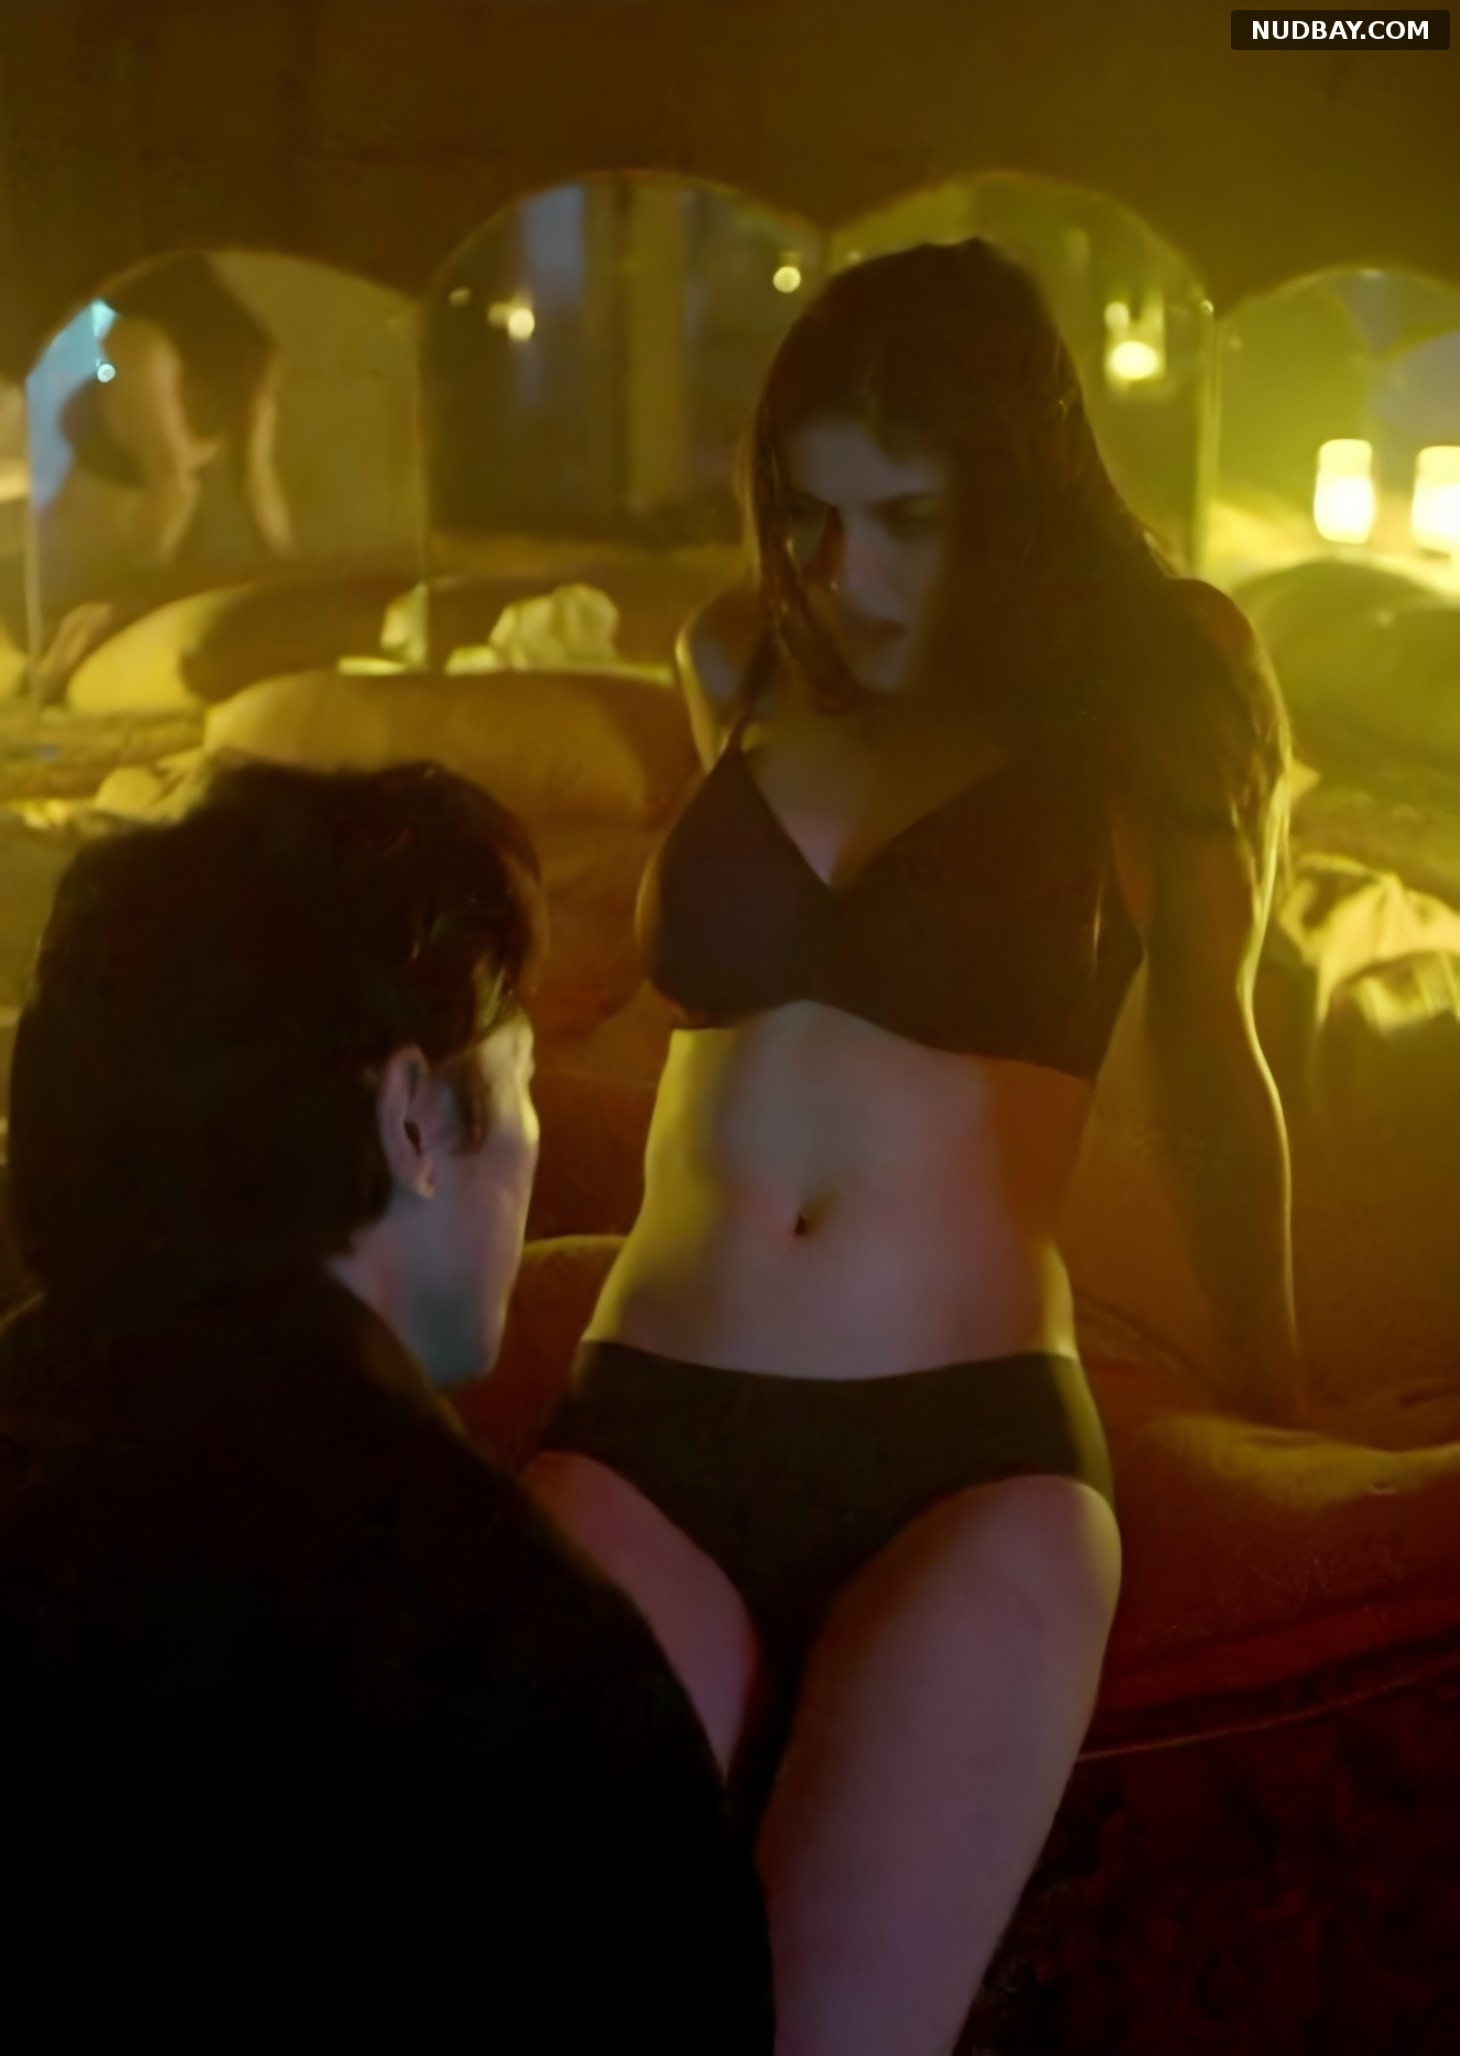 Alexandra Daddario nude Lost Girls and Love Hotels (2020)